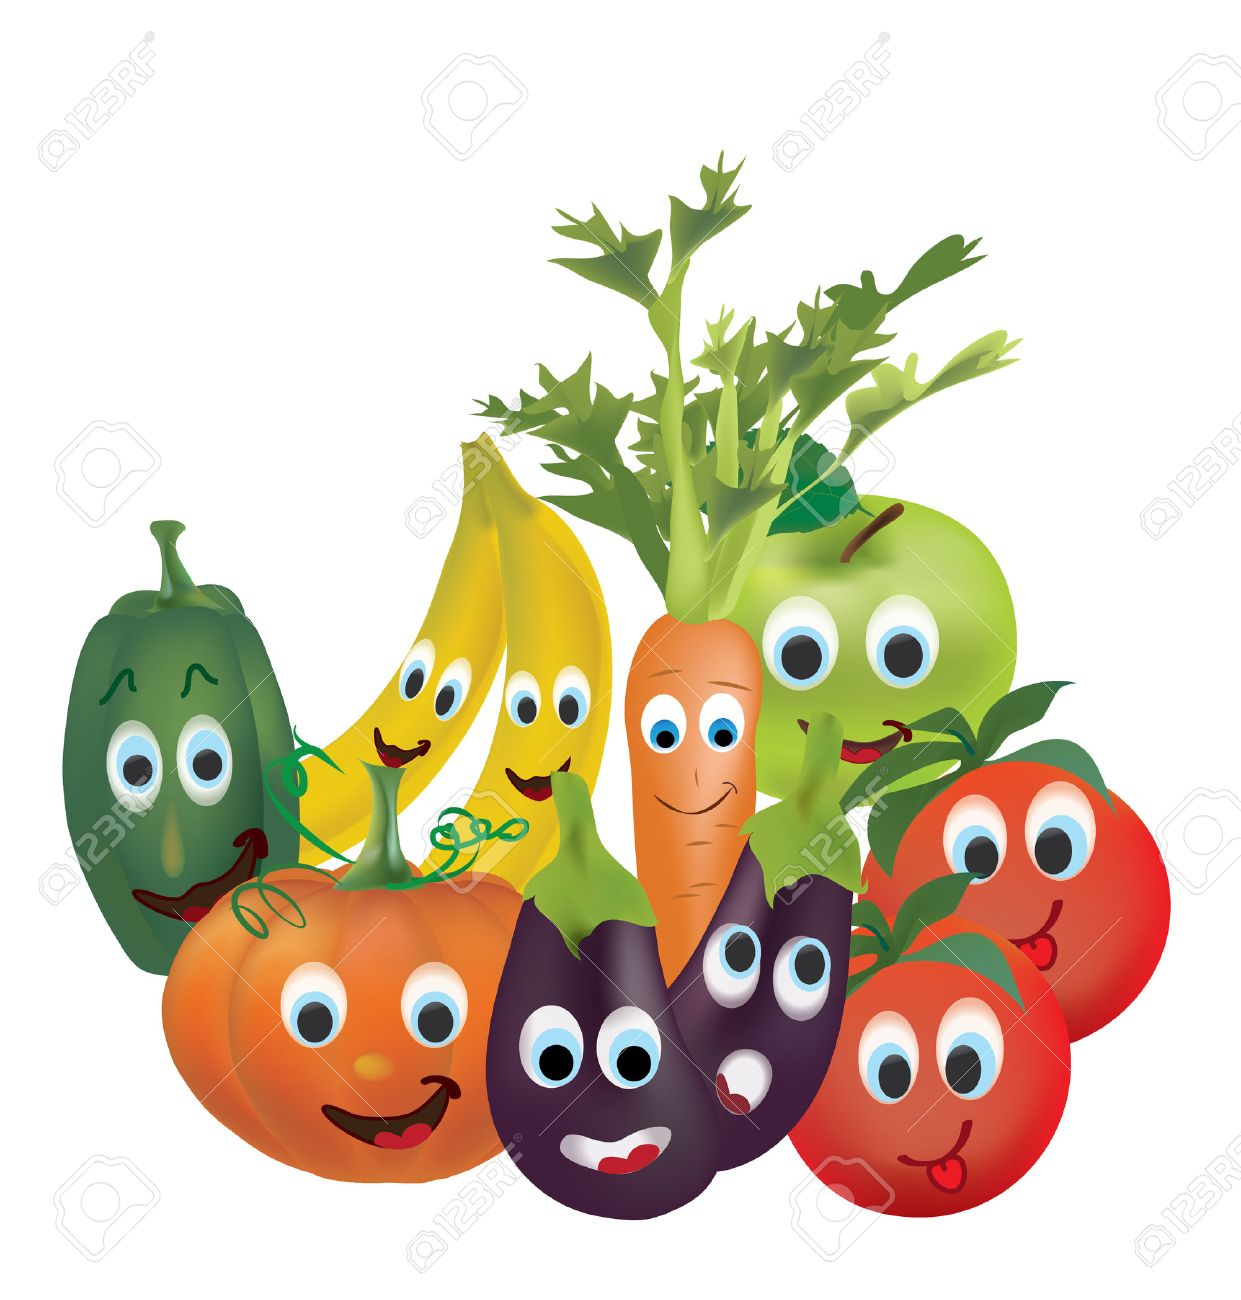 1241x1300 Illustration Collection Of Animated Fruits And Vegetables Tomatoes